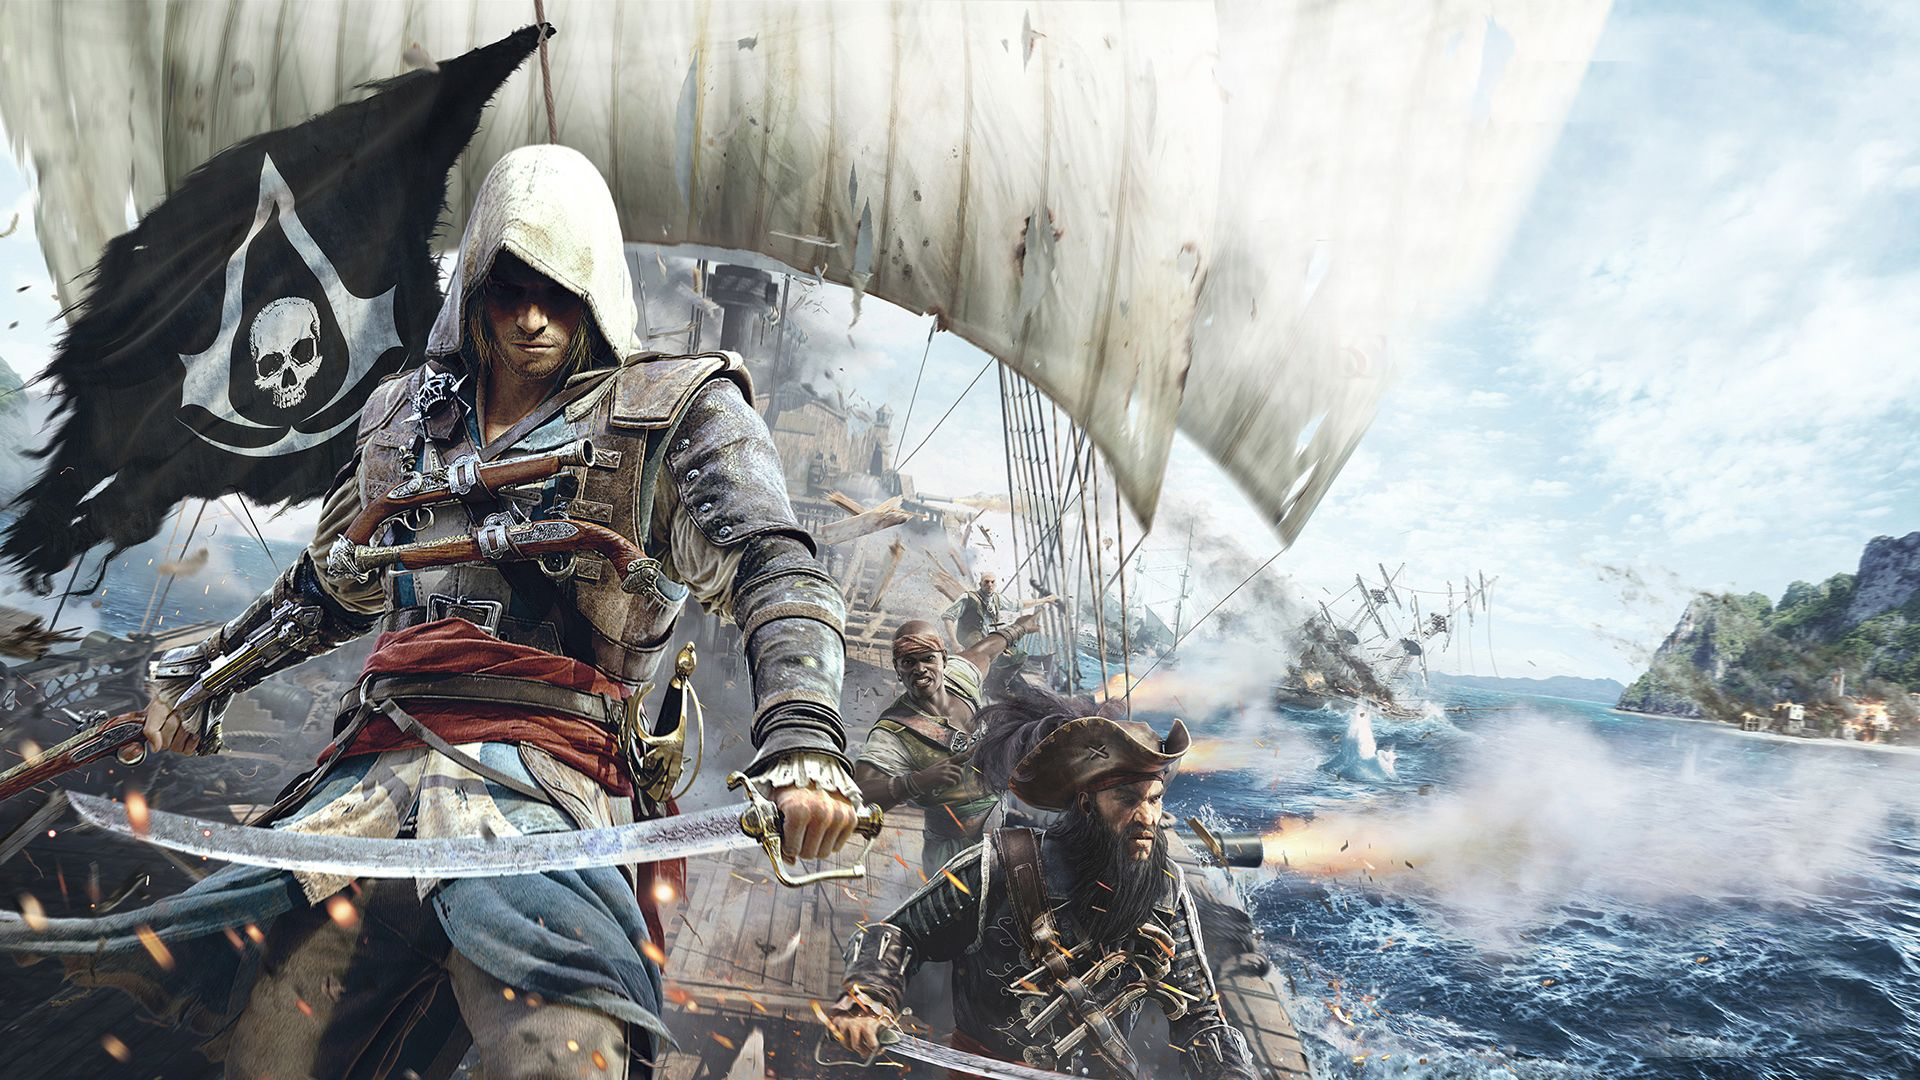 Wallpapers Assassins Creed 4 Black Flag Game Hd Assassins Creed Black Flag Assassin S Creed Black Assassin S Creed Wallpaper